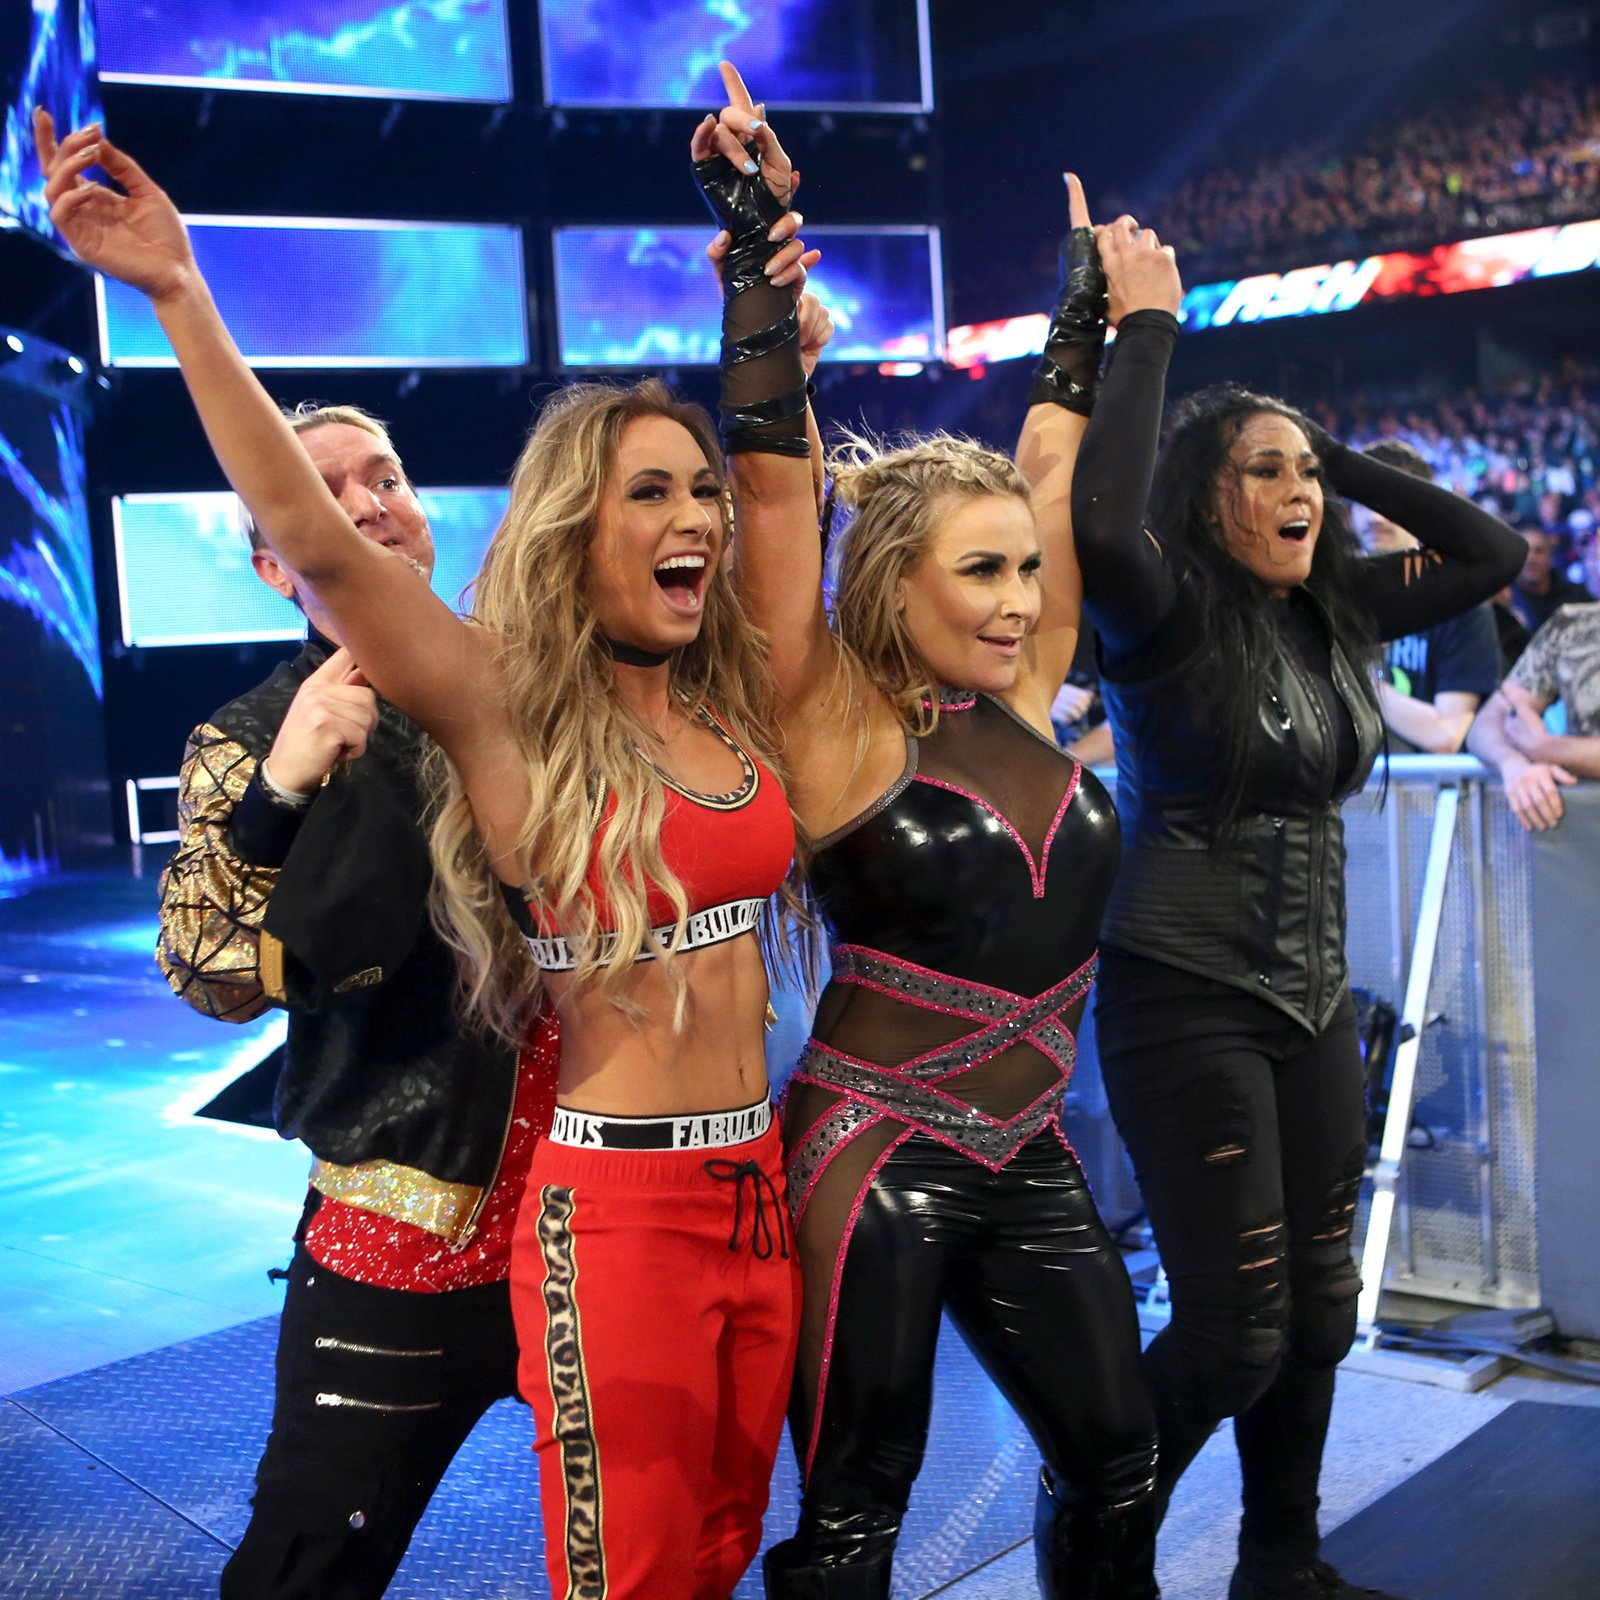 A focused attack on Becky Lynch ultimately works in Carmella, Natalya & Tamina's favor.